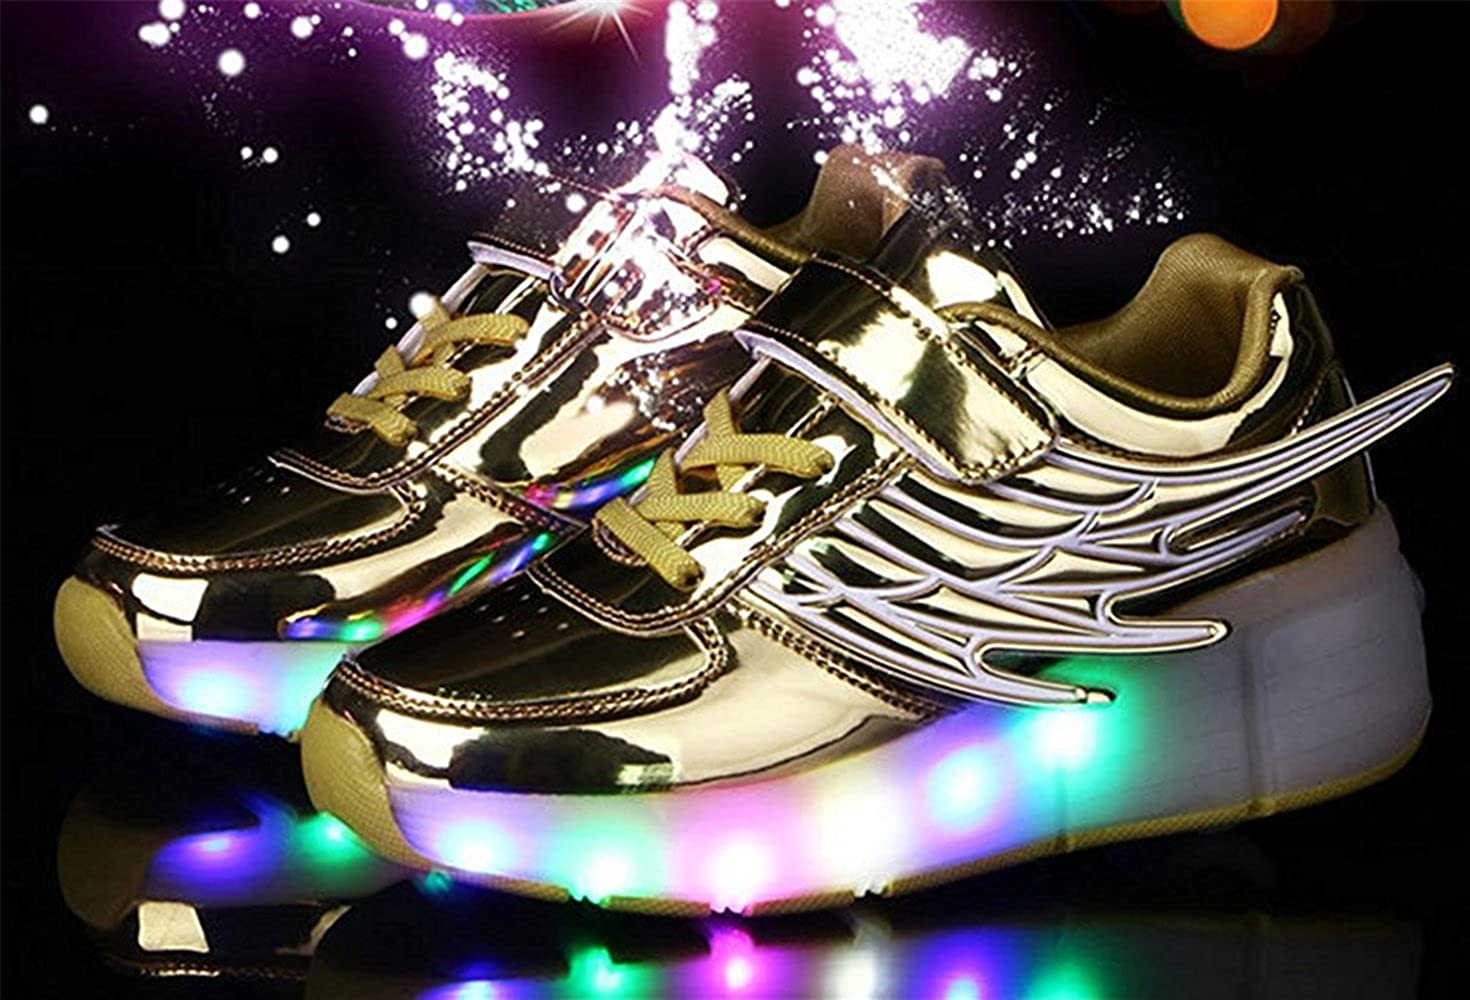 Gentleman/Lady PRETTYHOMEL Kids Wheely Shoes Girls Kids Boys Kids Girls Shoes LED Light up Heelys Roller Skate Sneakers Kids Gift Many varieties Orders are welcome Tide shoes list NG9129 f8adf9